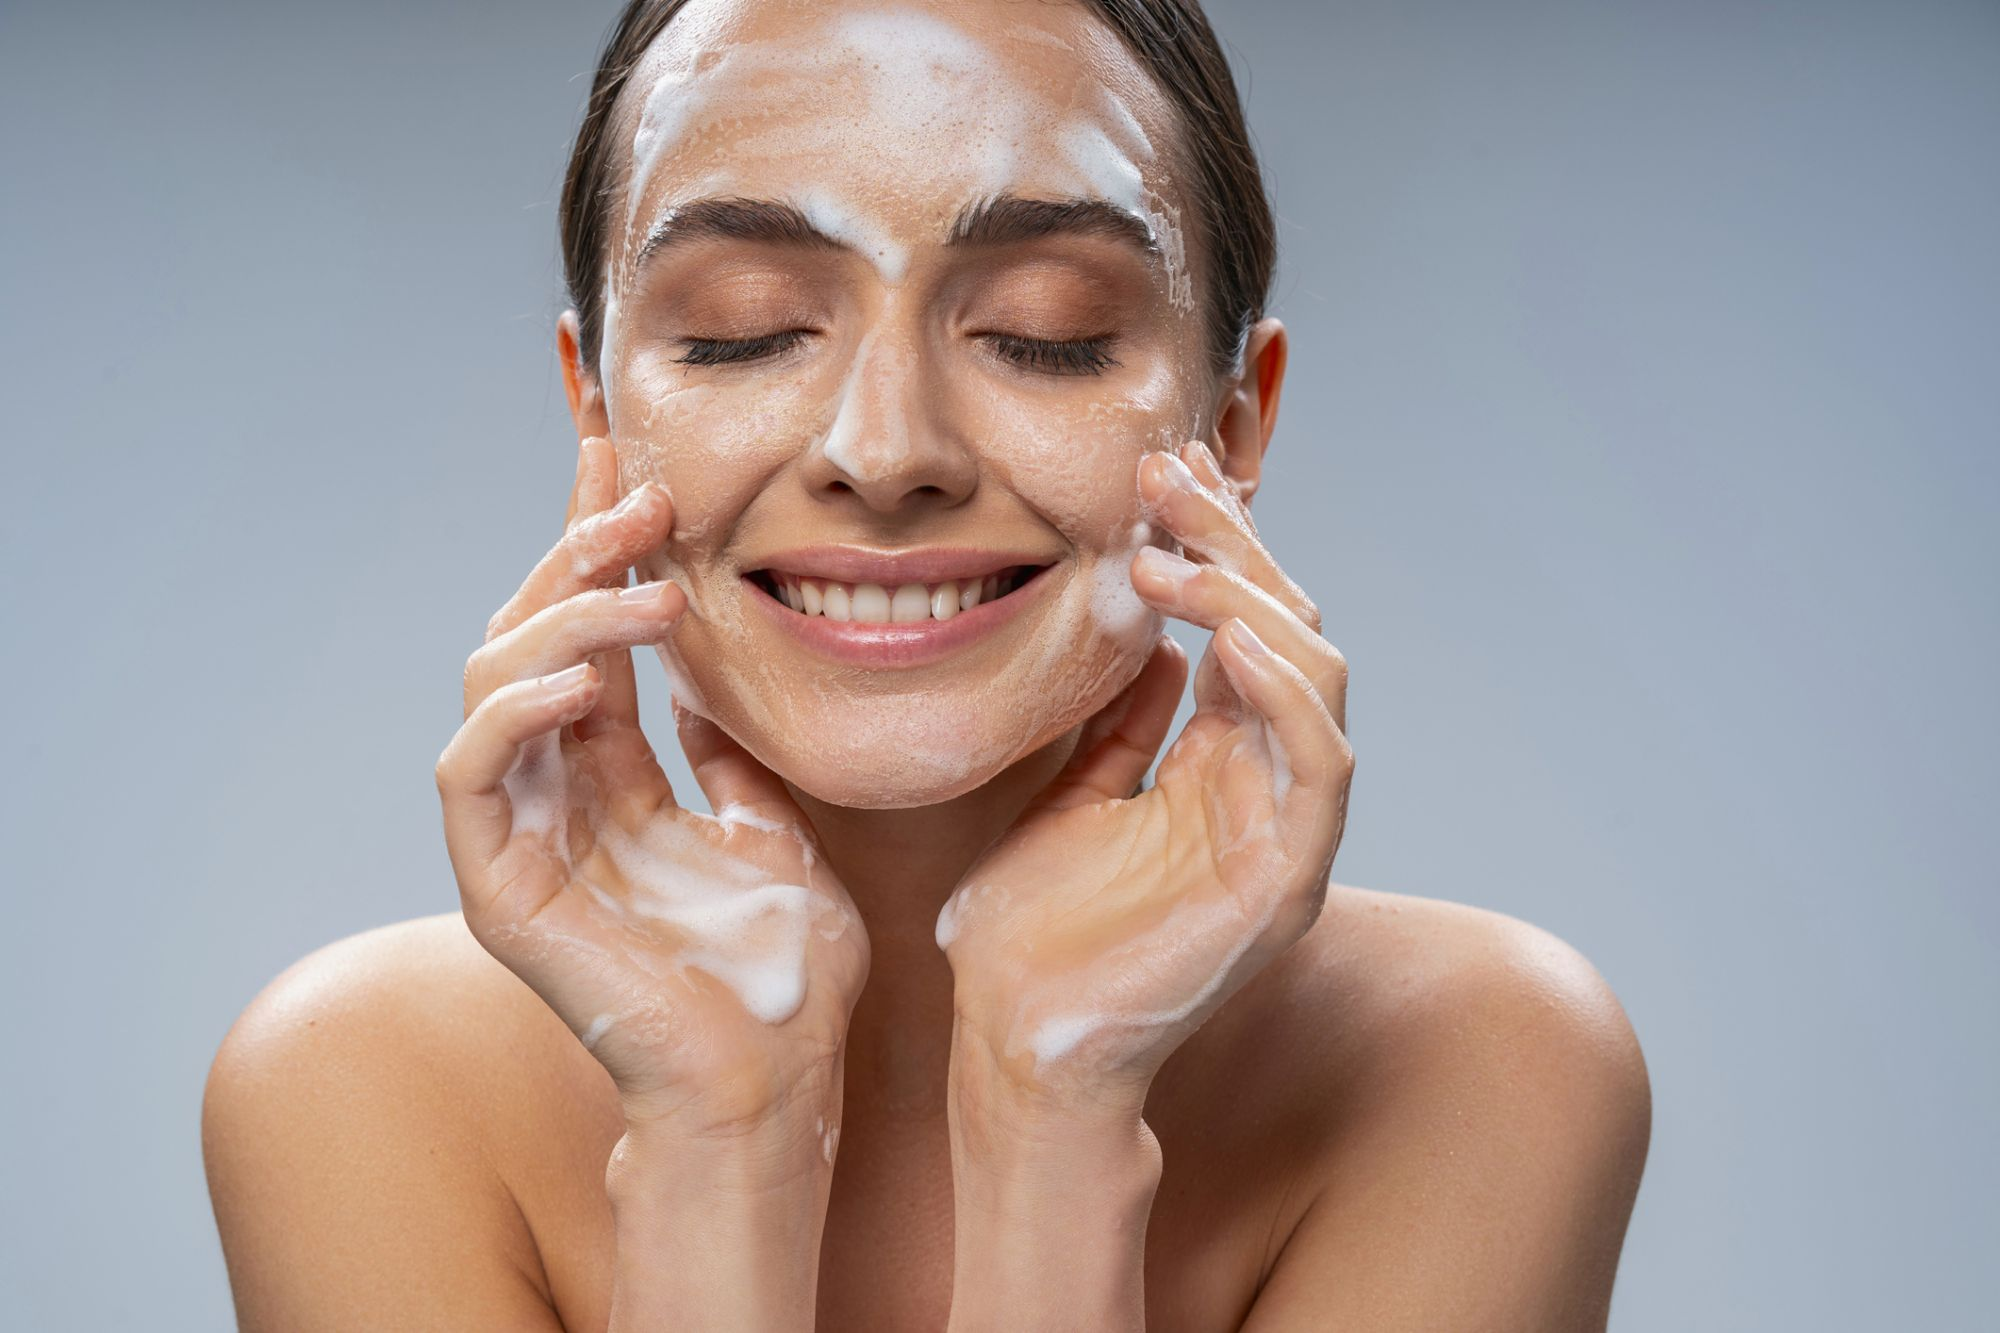 Portrait of smiling attractive woman touching face by hands while cleansing the skin from makeup. Isolated on grey background. Cosmetics and care concept